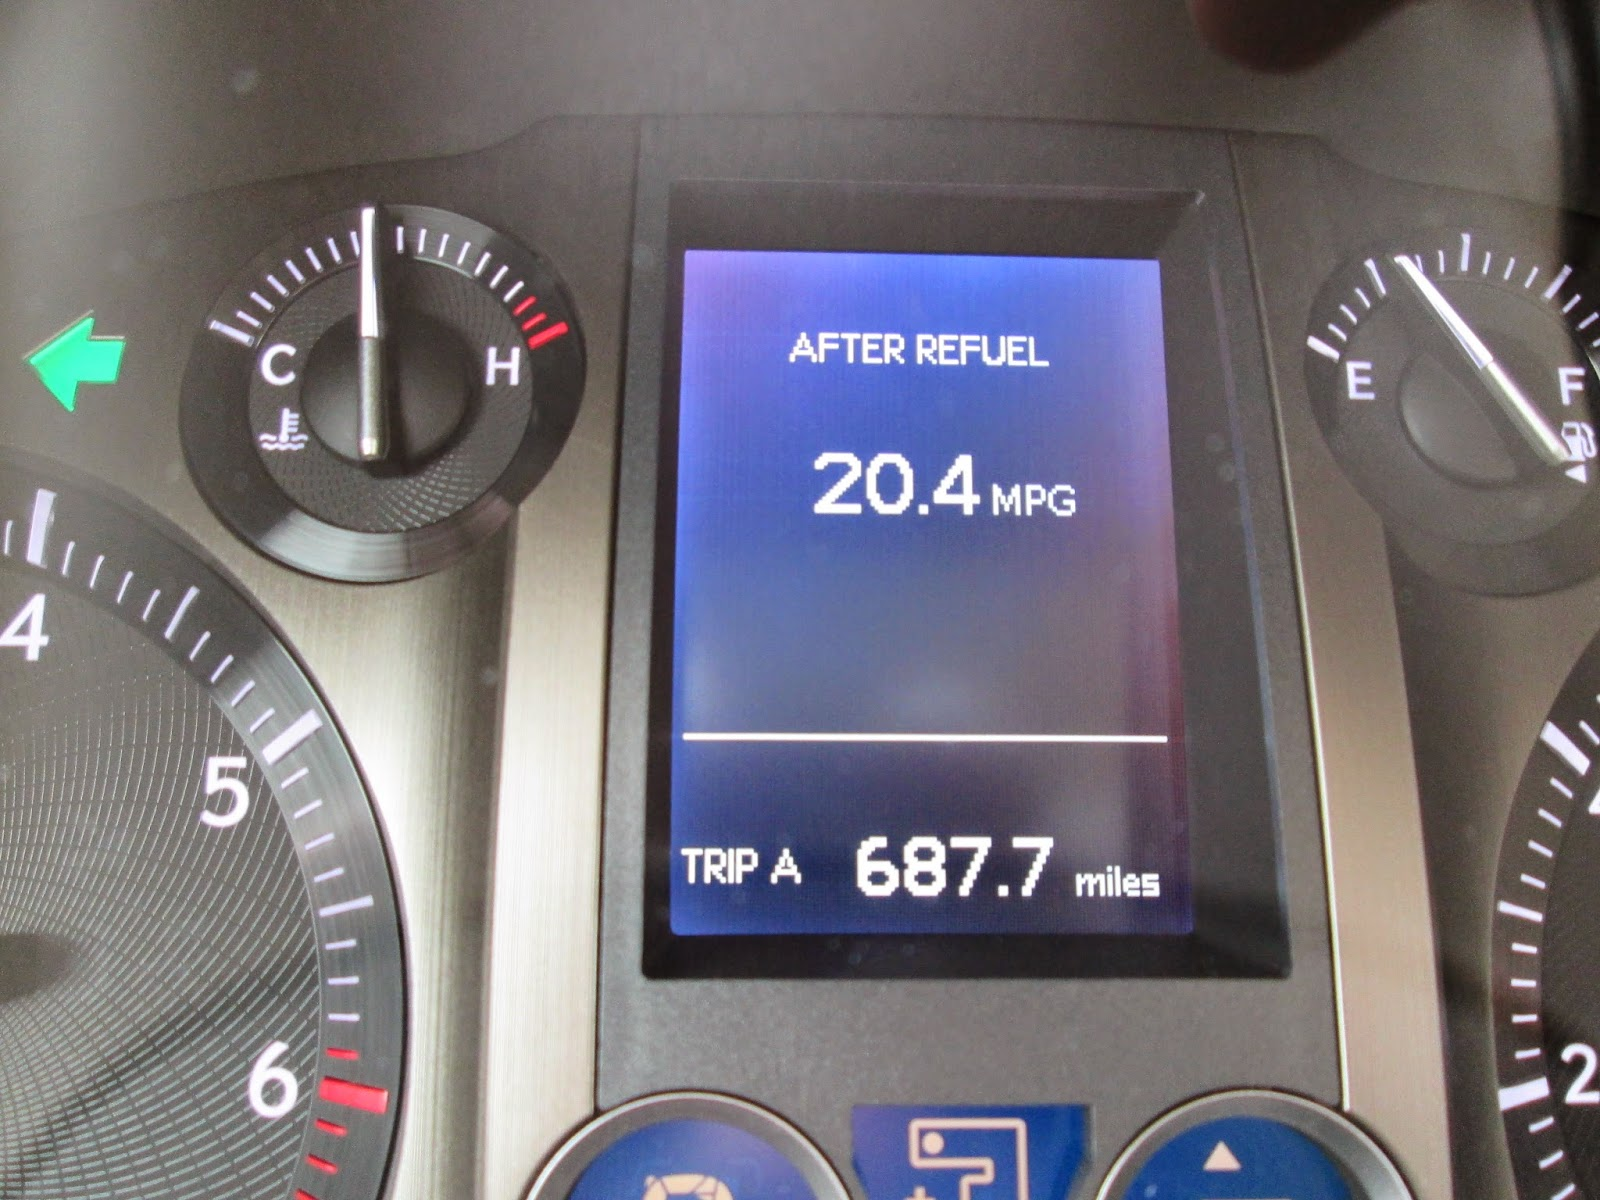 20.4 mpg showing on trip computer